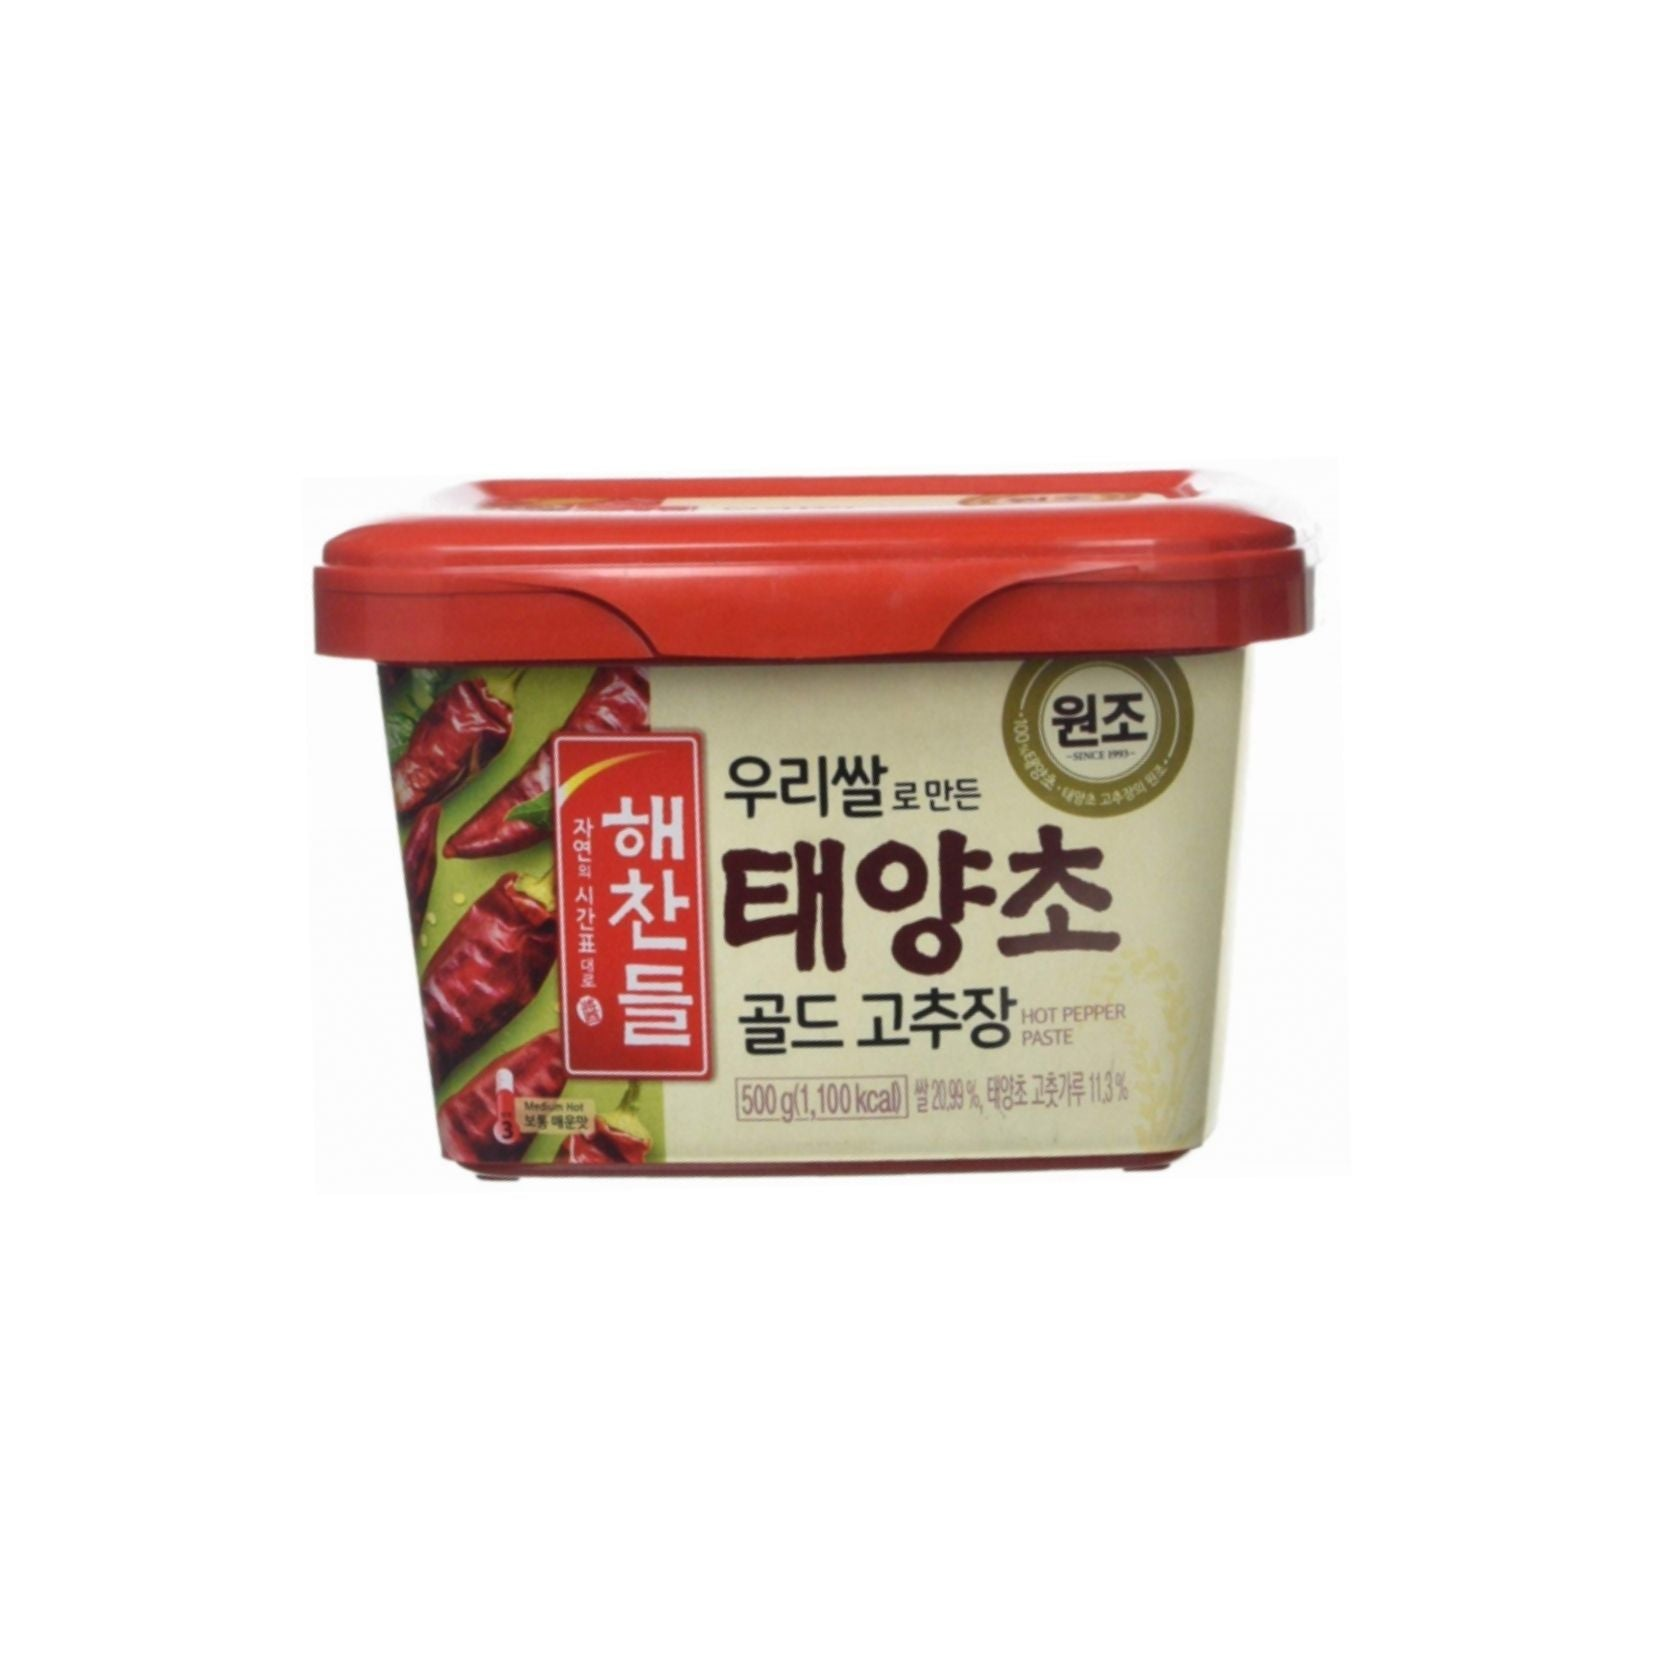 Gochujang Red Pepper Korean Paste - 1kg